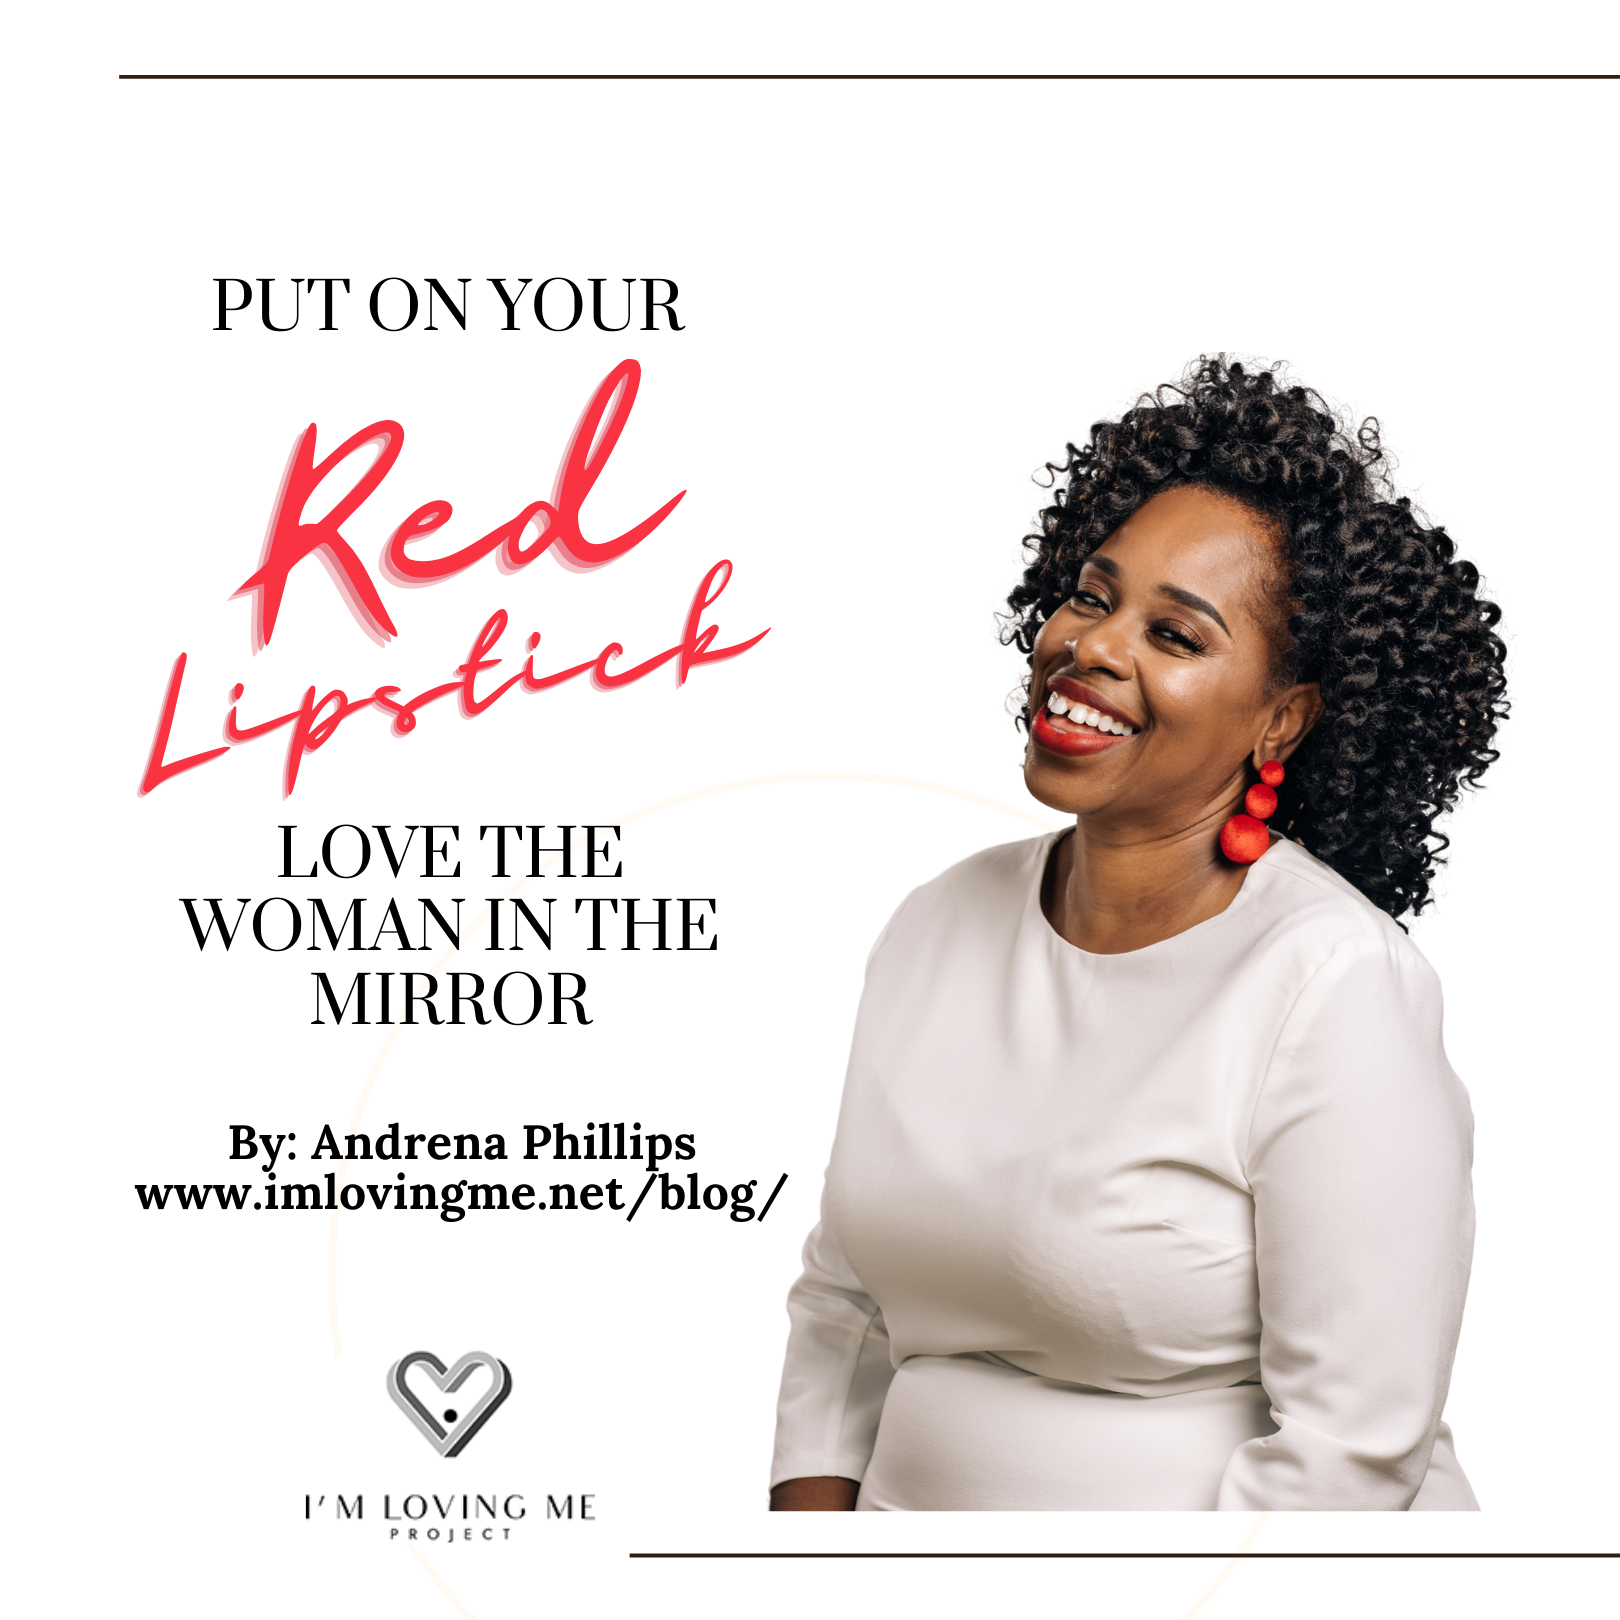 Put On Your Red Lipstick!